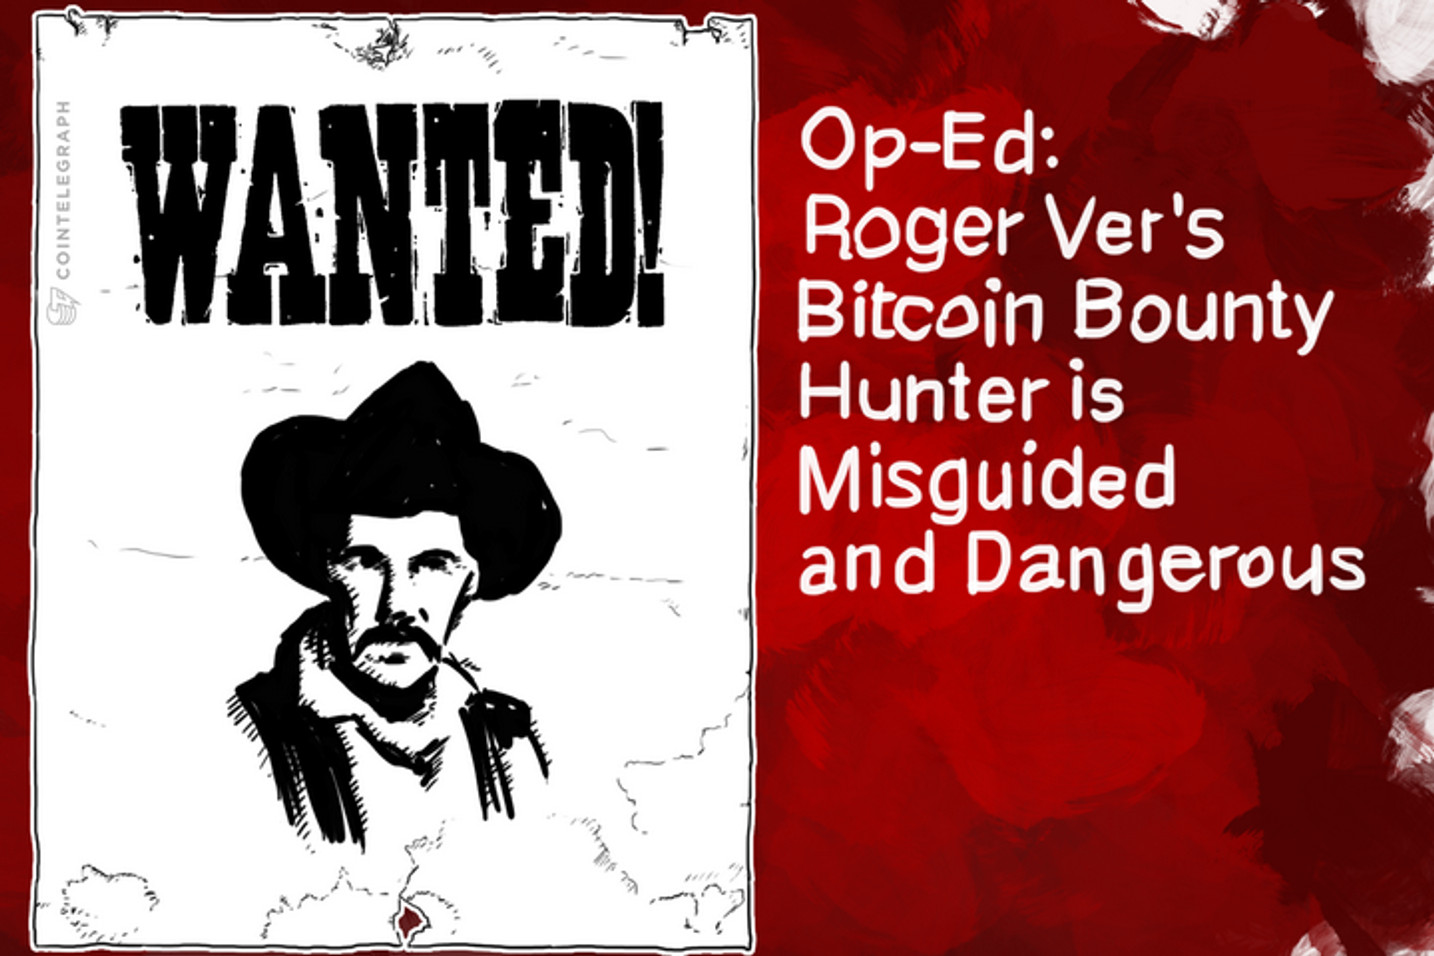 Op-Ed: Roger Ver's Bitcoin Bounty Hunter is Misguided and Dangerous